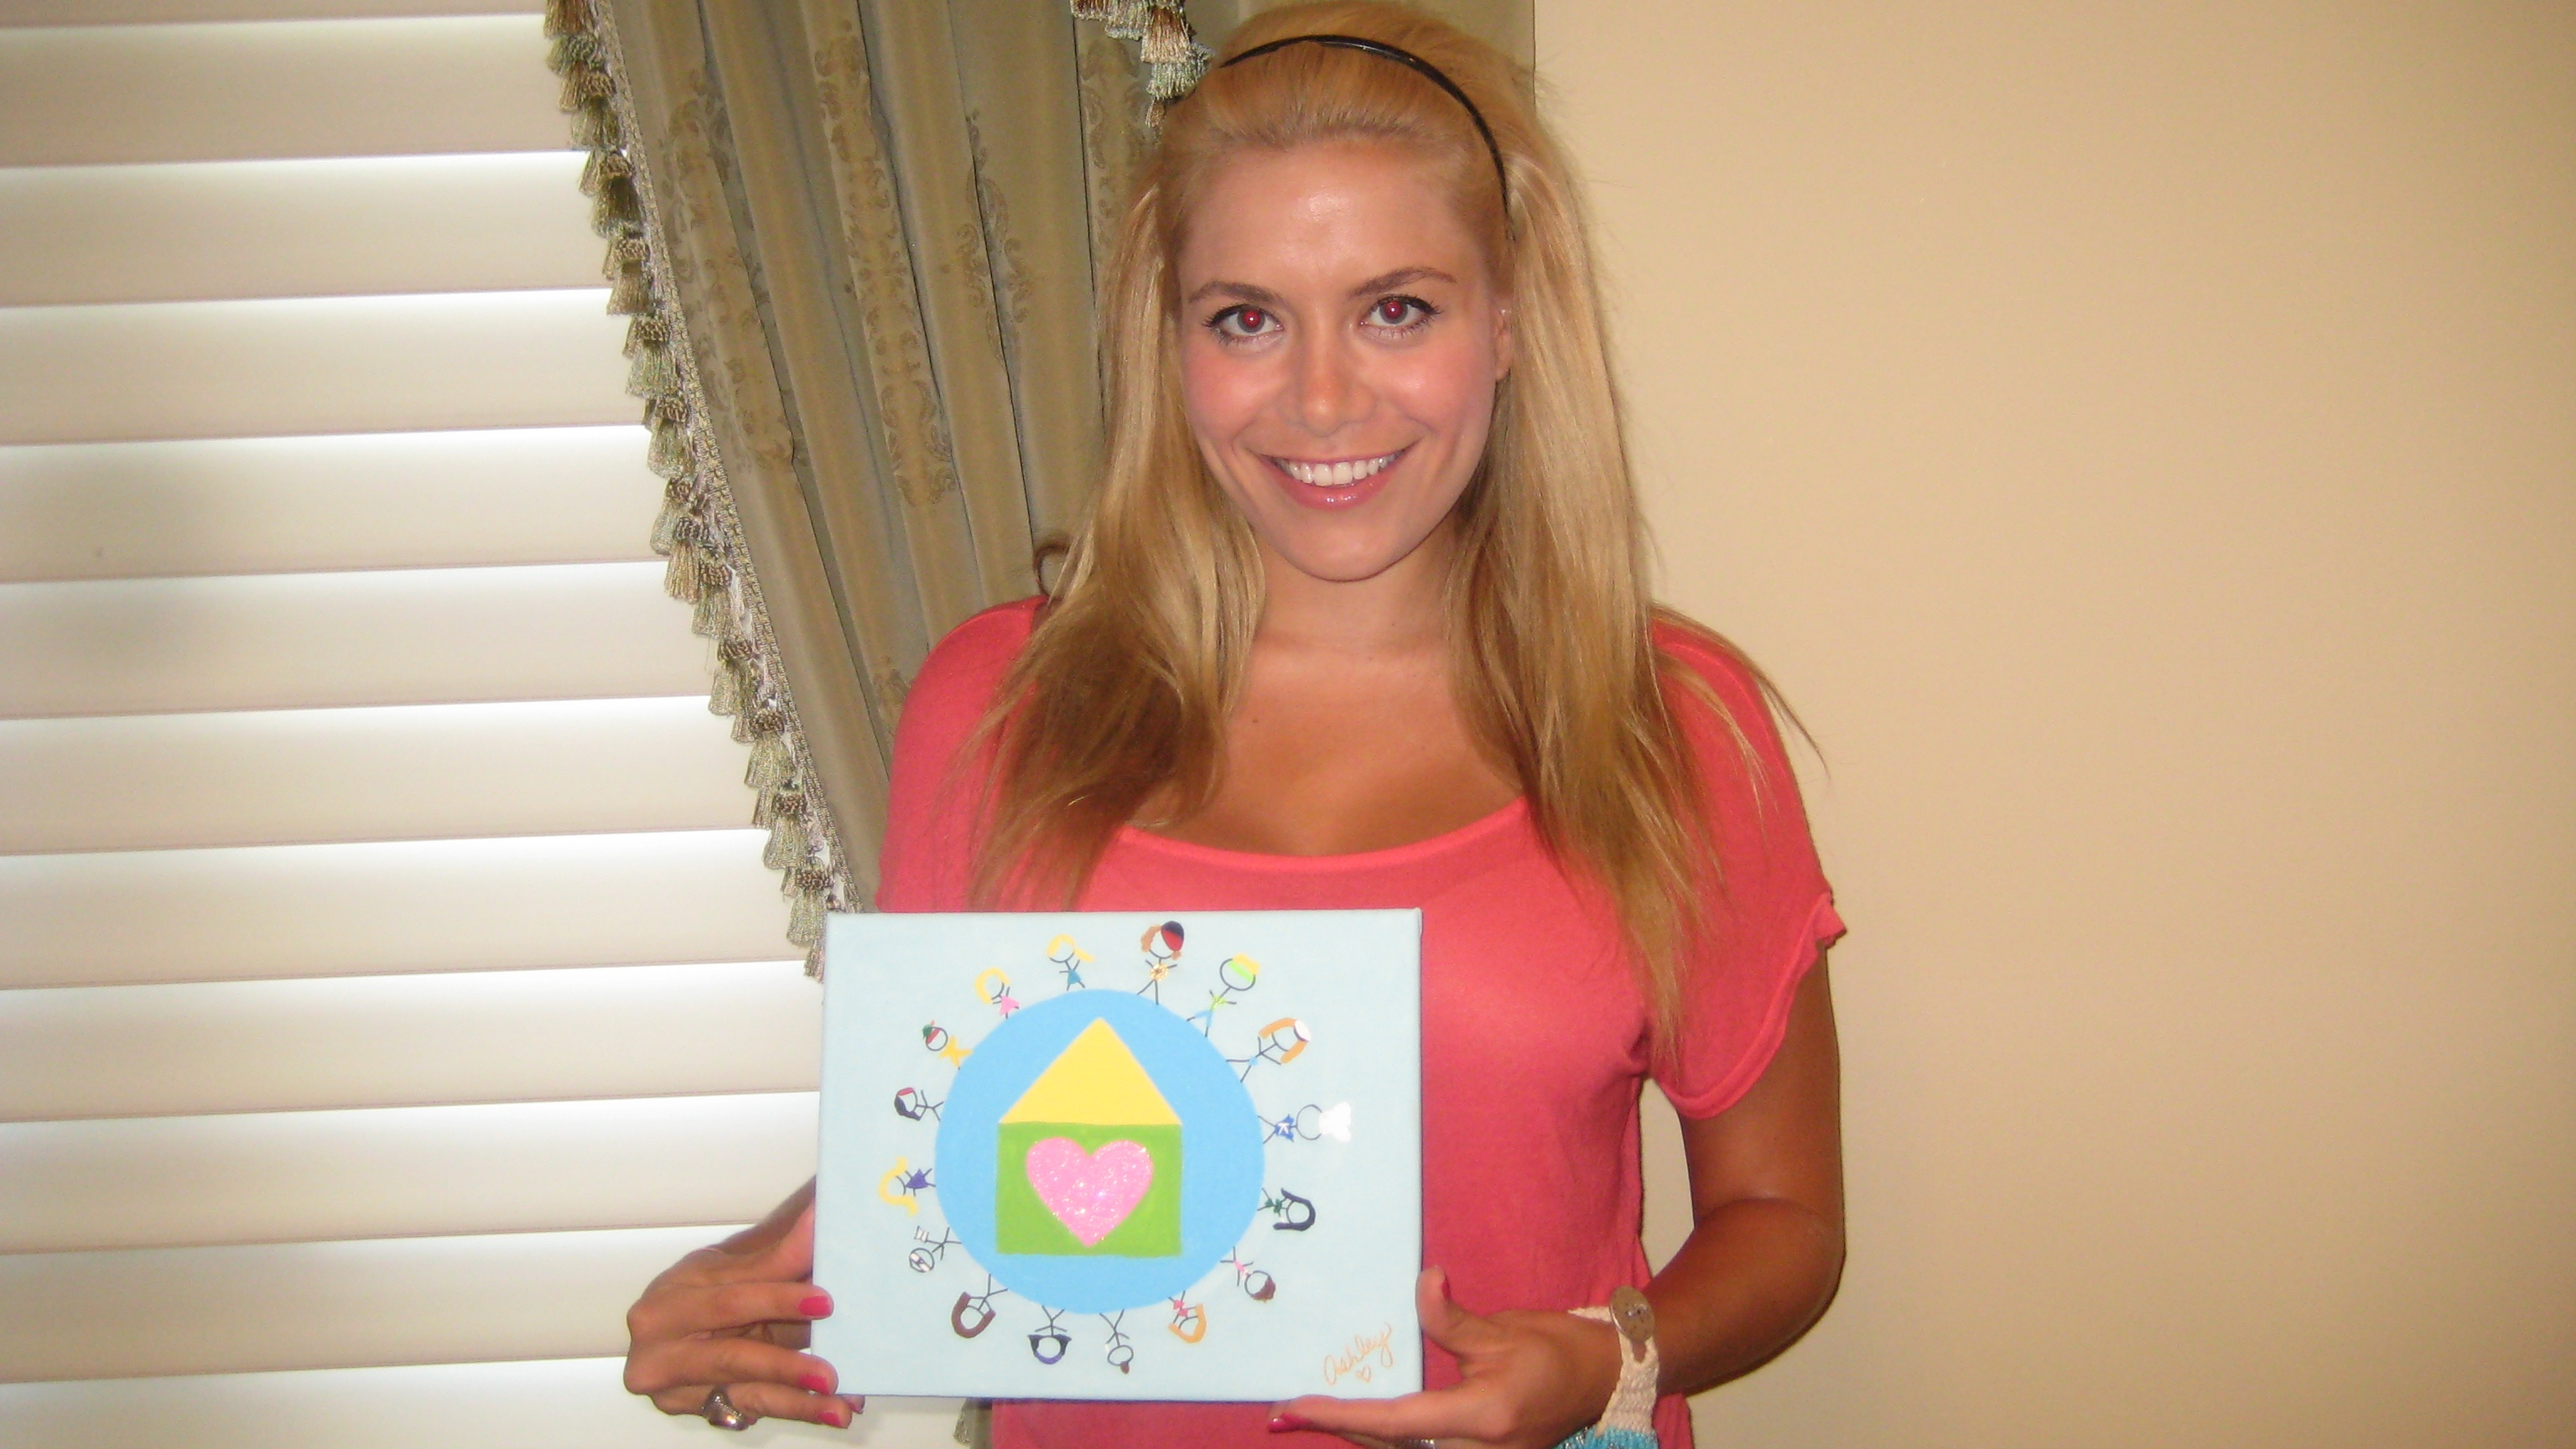 Ashley and her Painting